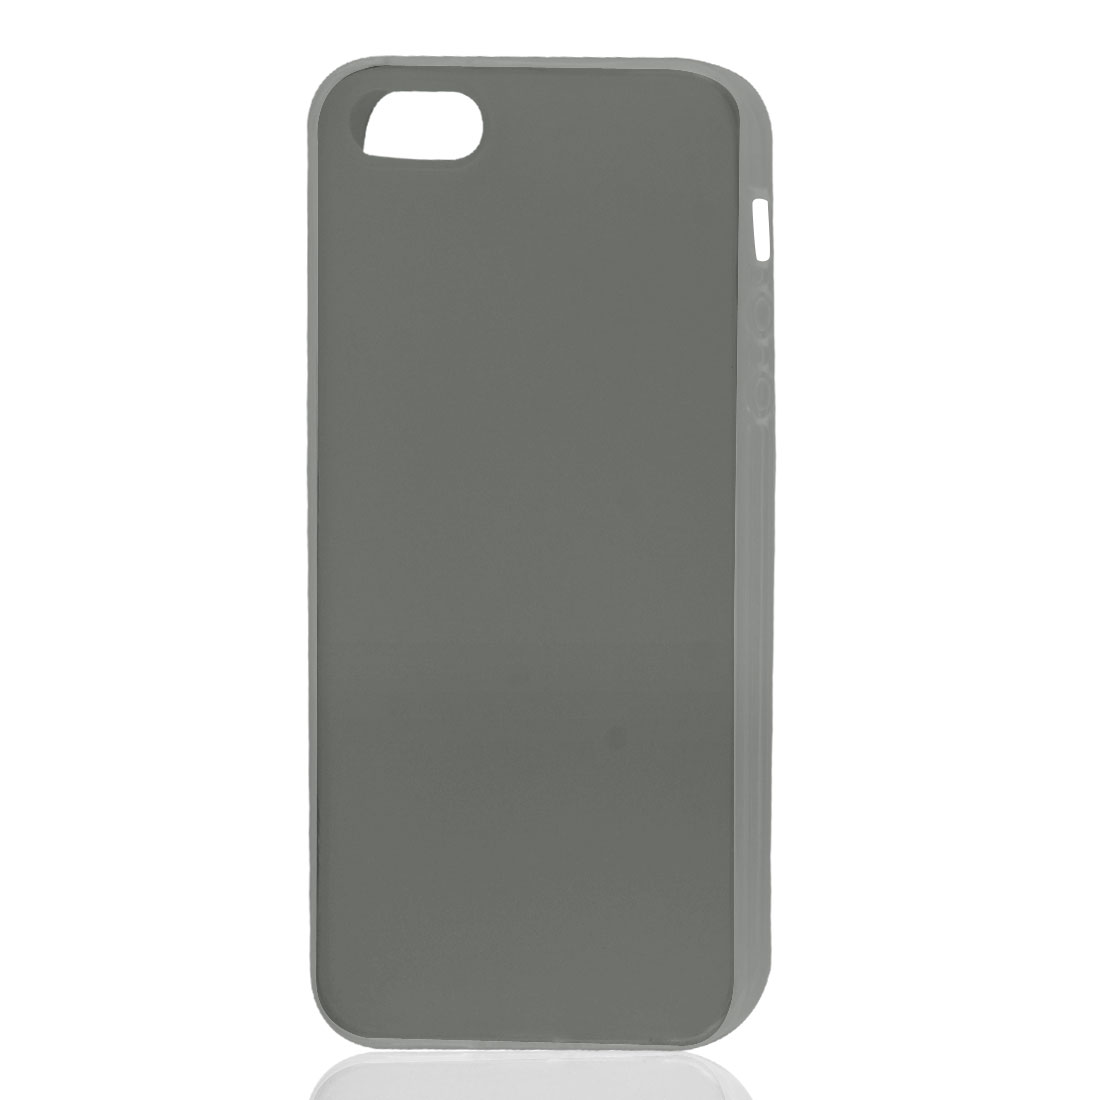 Dark Gray Soft Plastic TPU Protective Case Skin Cover for iPhone 5 5G